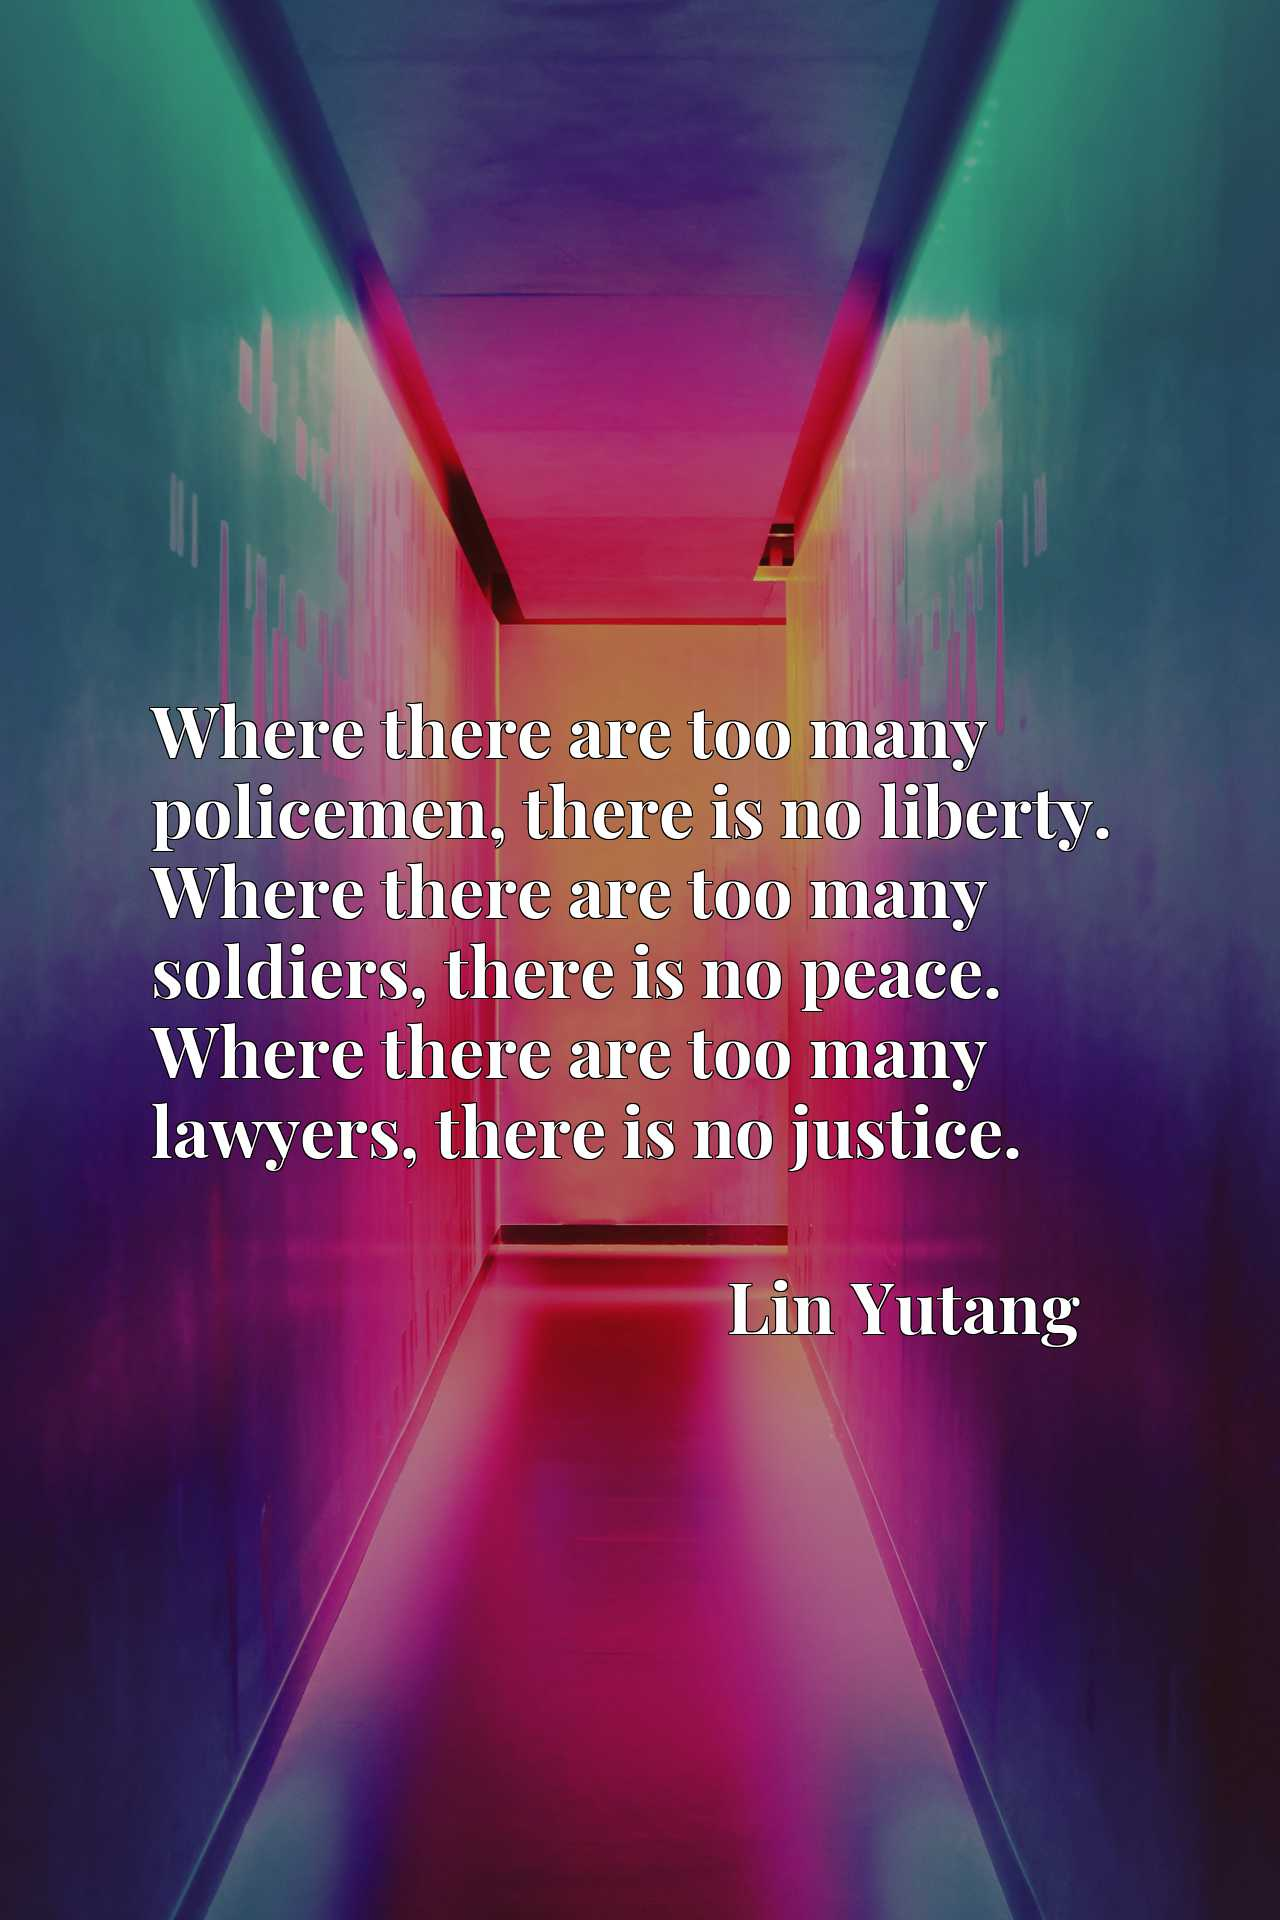 Where there are too many policemen, there is no liberty. Where there are too many soldiers, there is no peace. Where there are too many lawyers, there is no justice.